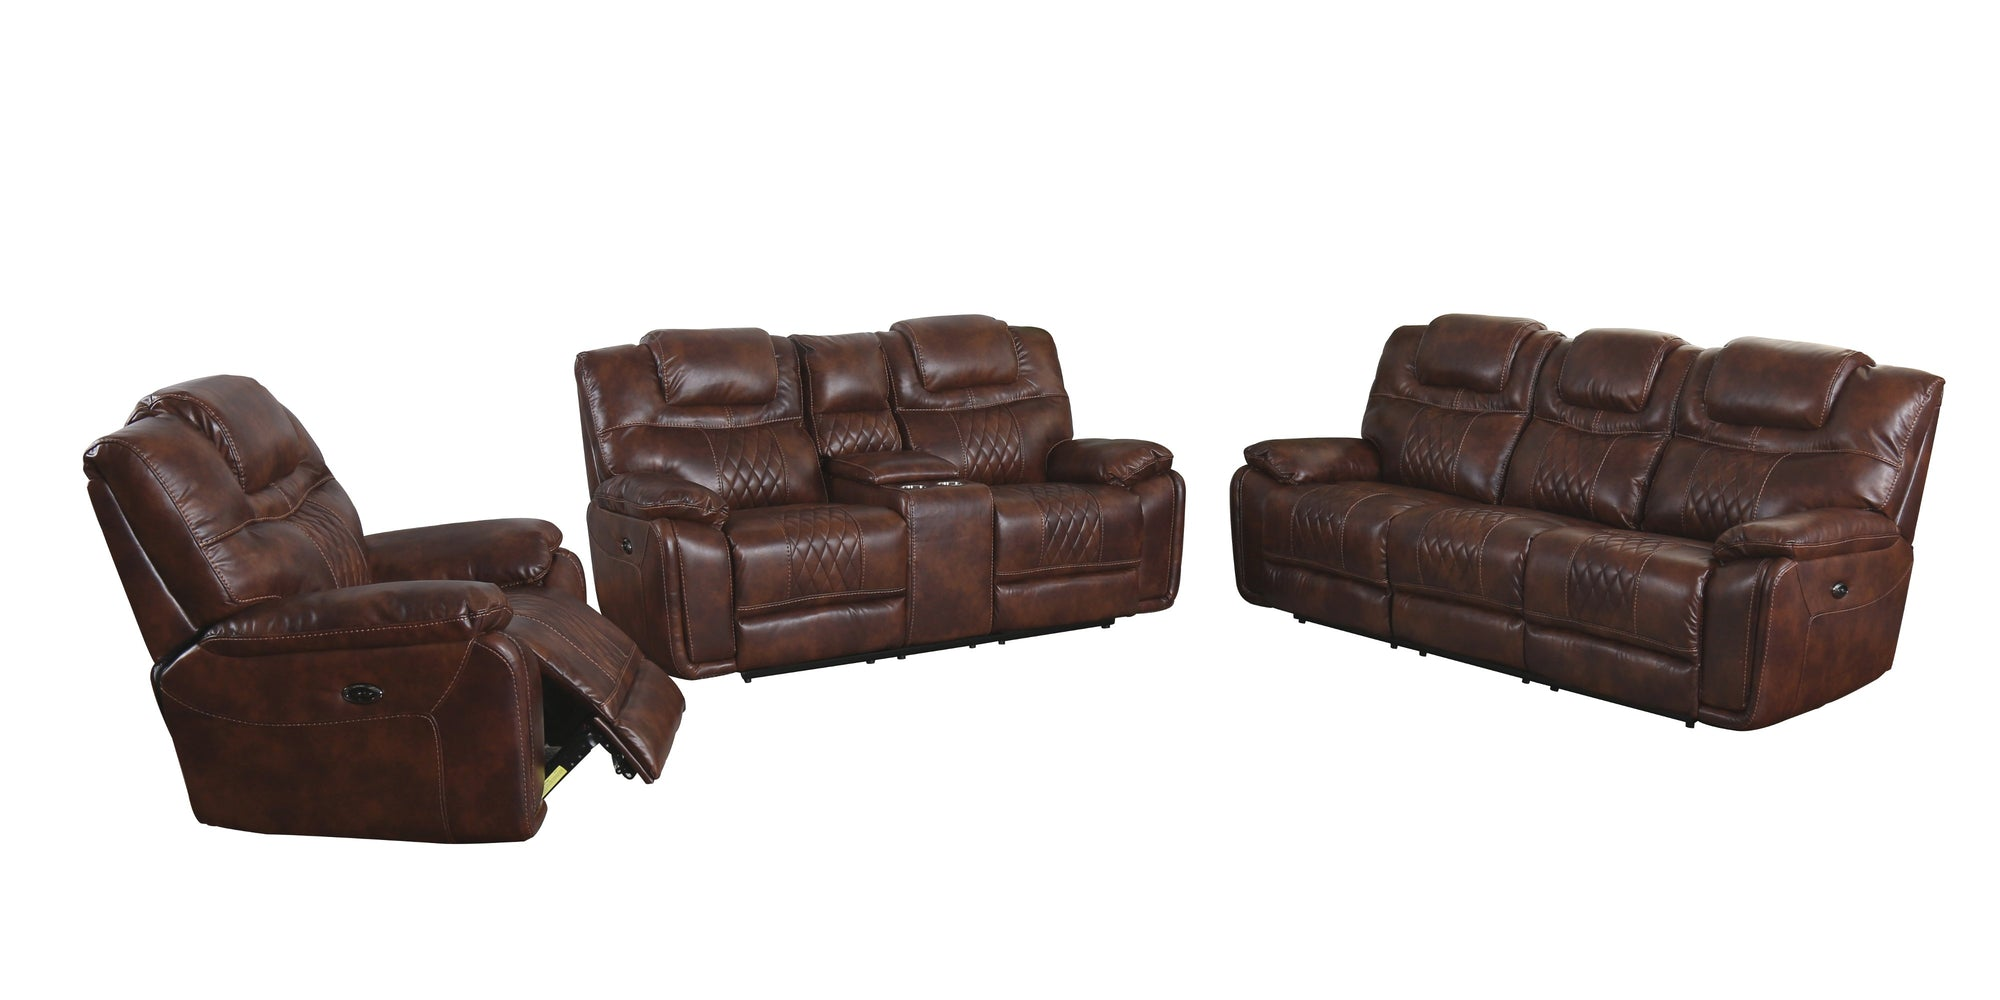 Sunset Trading Diamond Power 3 Piece Reclining Living Room Set by Sunset Trading - HomeKingz.com - Online furniture shop with the best prices & premium customer support!